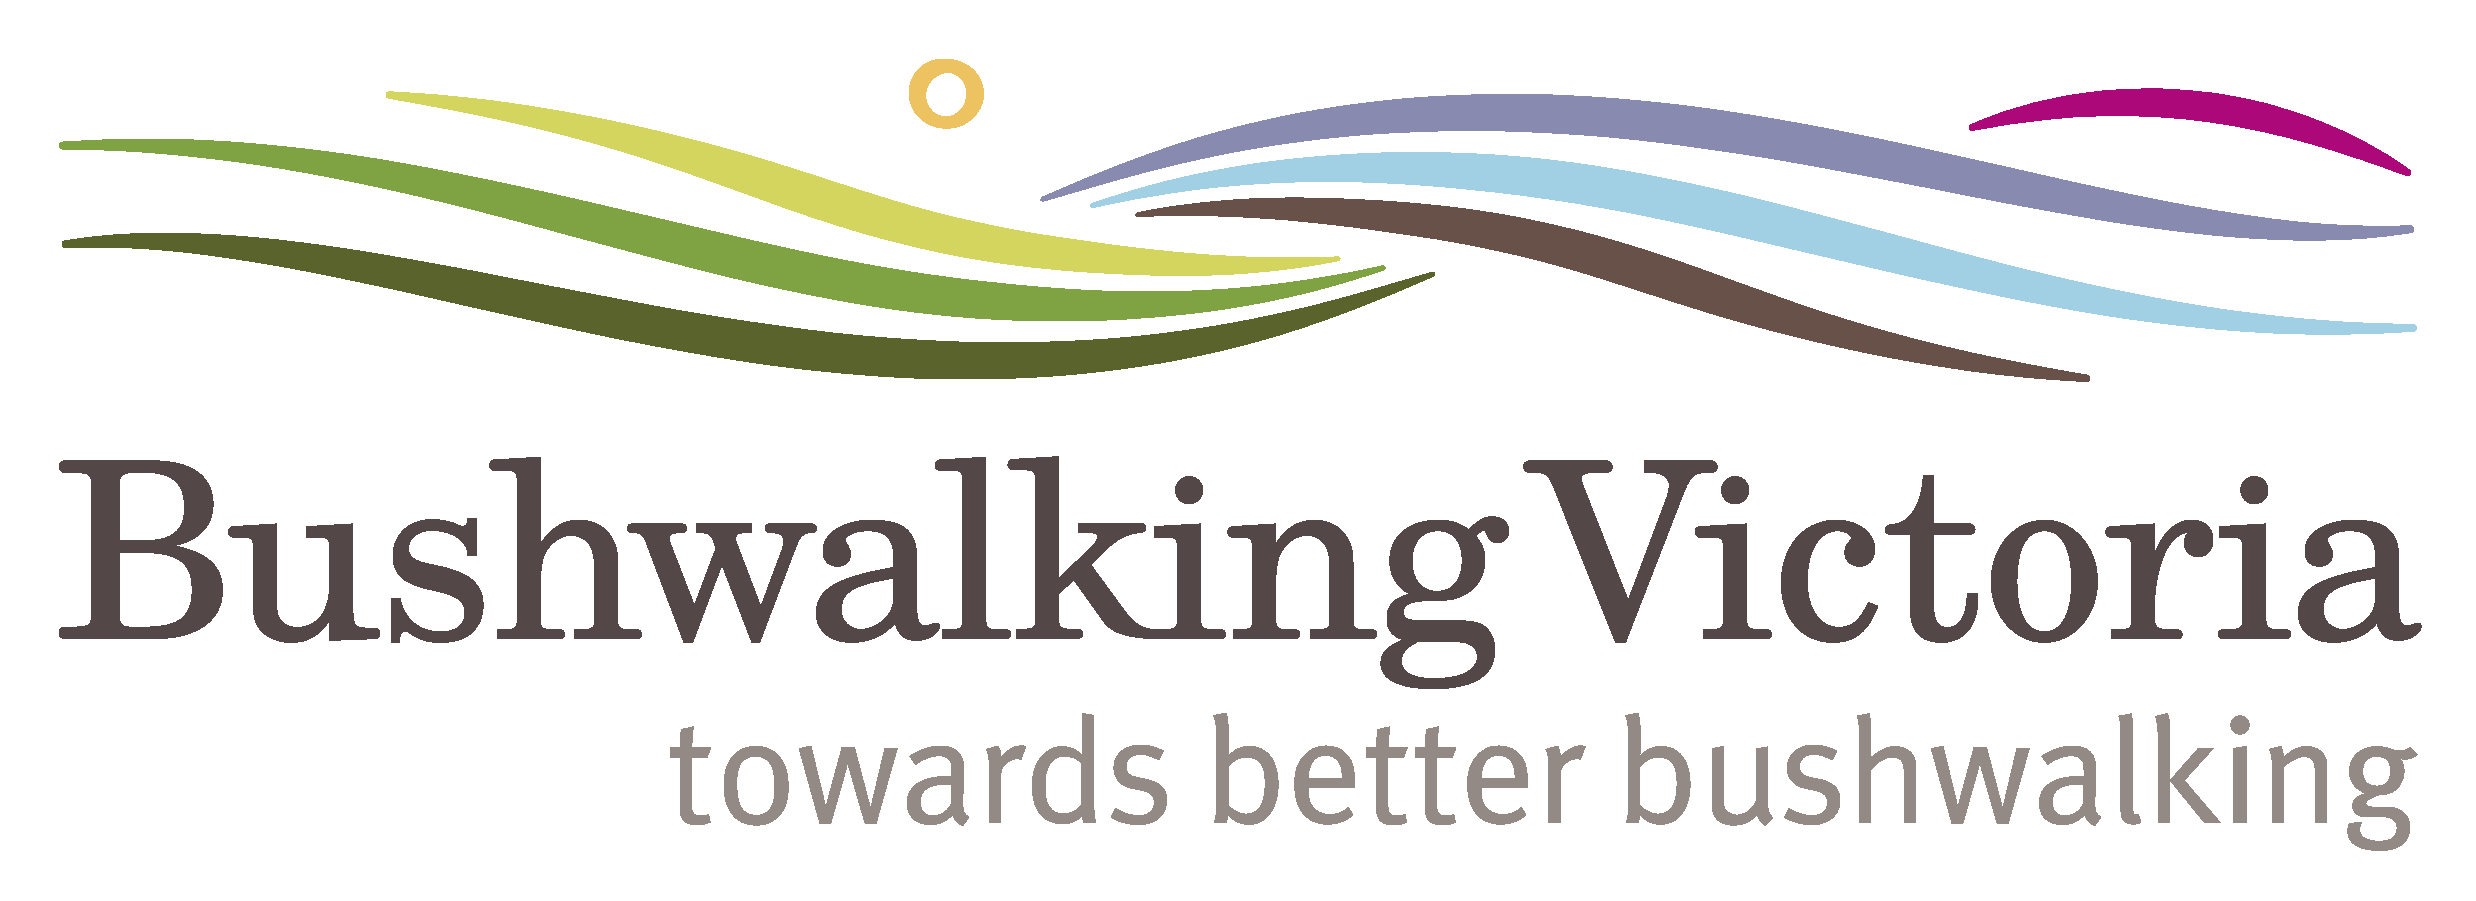 Bushwalking Vic logo